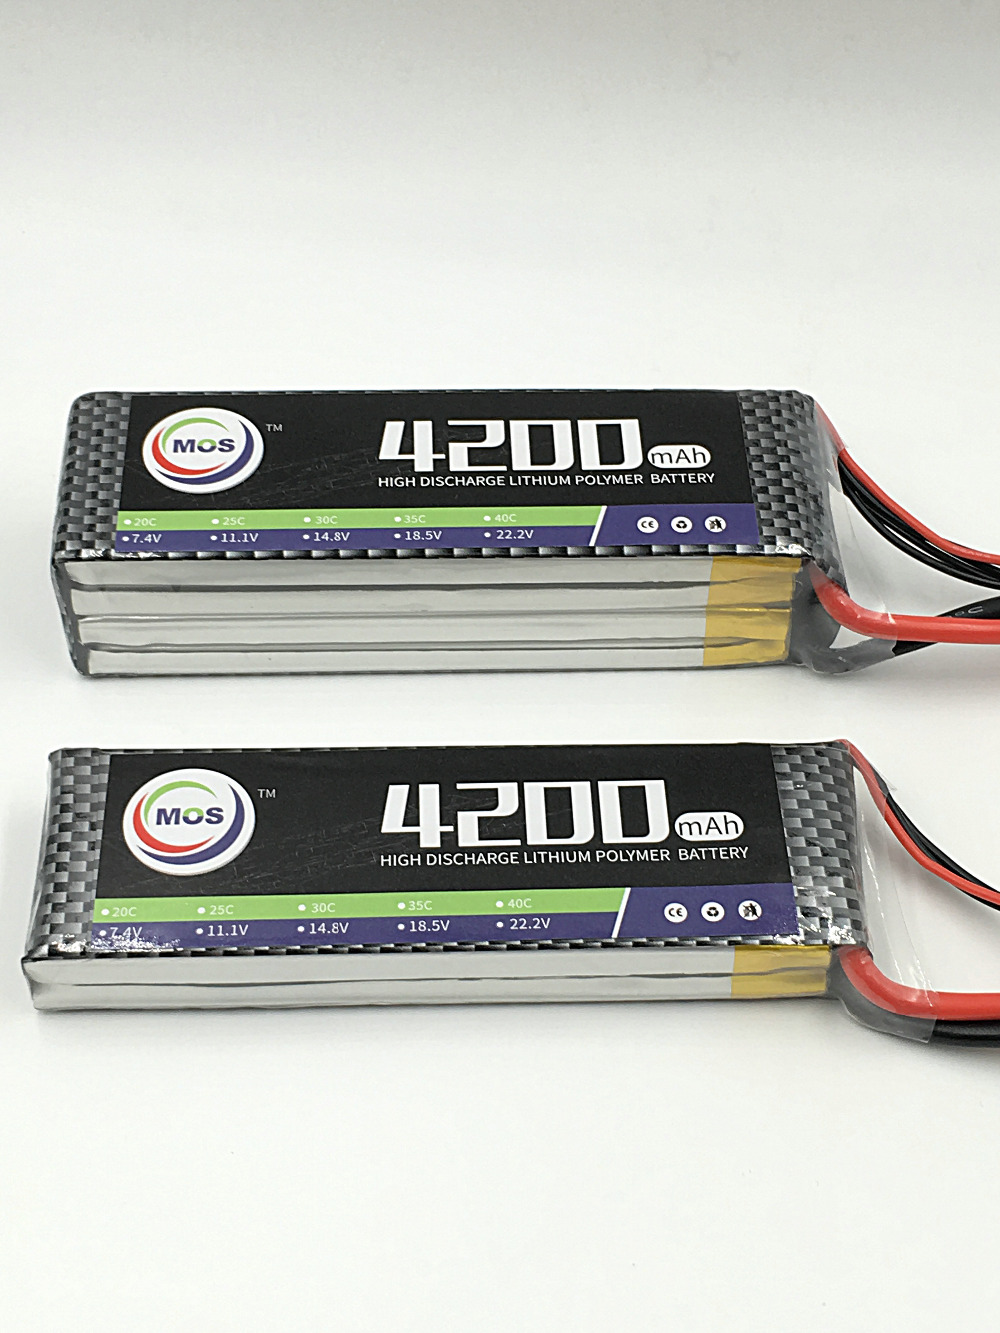 MOS RC Lipo battery 3S 11.1v 4200mah 35c for rc airplane rc helicopter quadcopter free shipping 2pcs package mos 3s lipo battery 11 1v 1300mah 35c for rc airplane free shipping